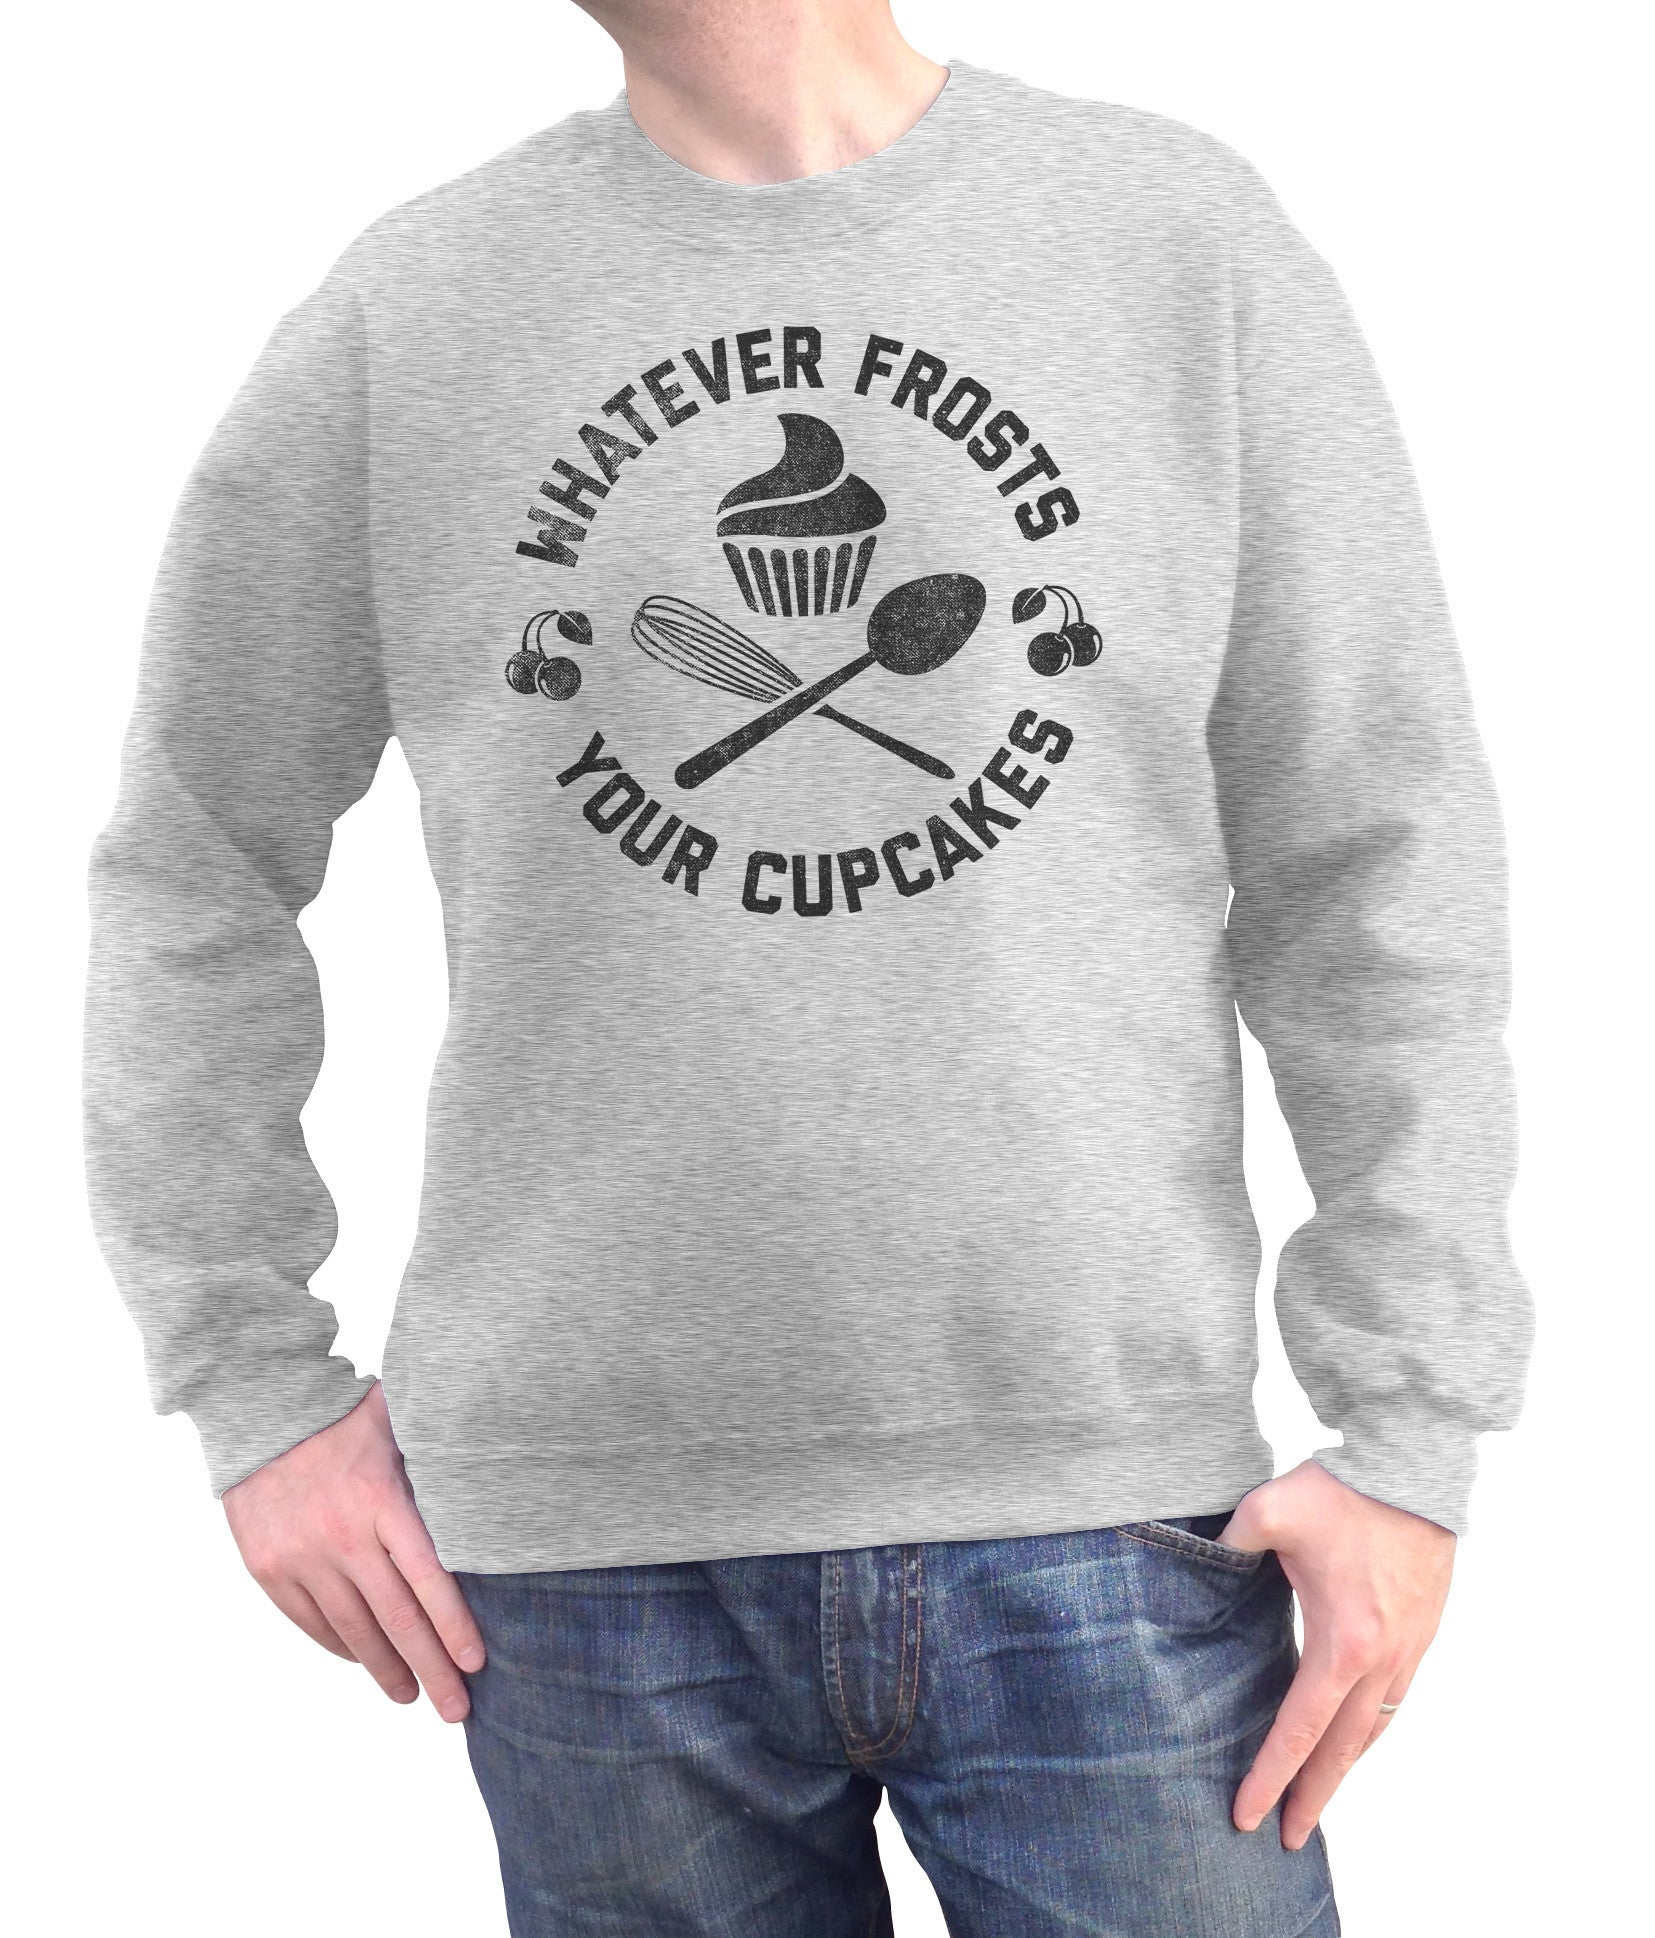 Unisex Whatever Frosts Your Cupcakes Sweatshirt